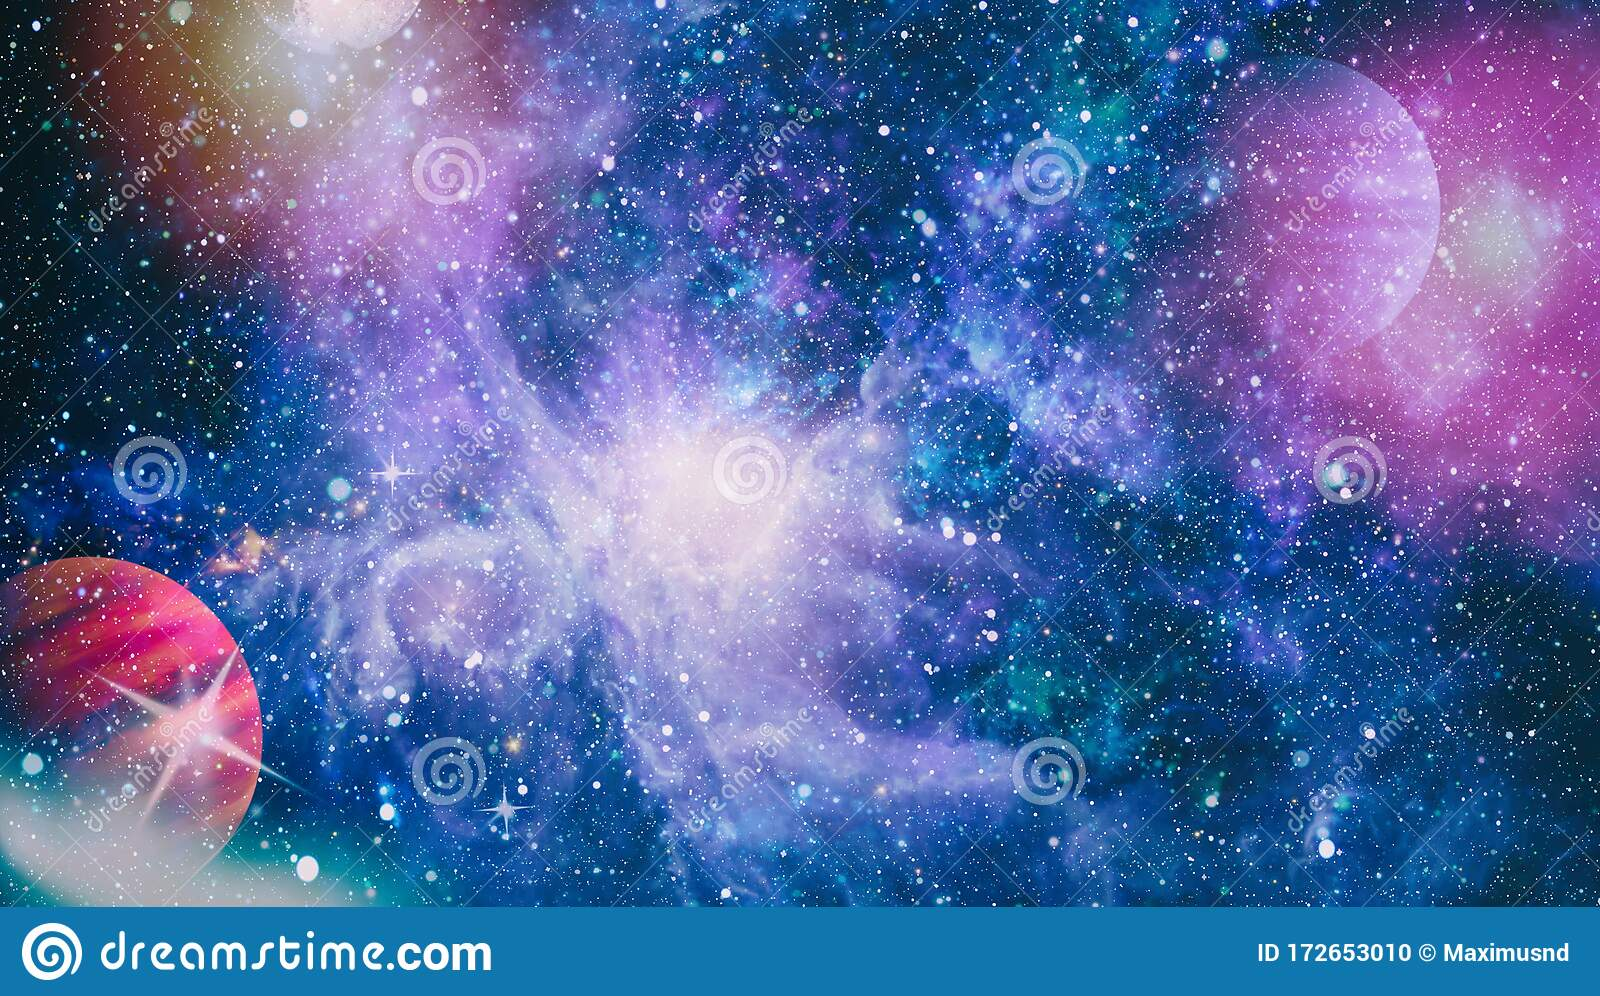 Dreamscape Galaxy Deep Space Science Fiction Fantasy In High Resolution Ideal For Wallpaper Elements Of This Image Furnished By Stock Photo Image Of Creation Astrology 172653010